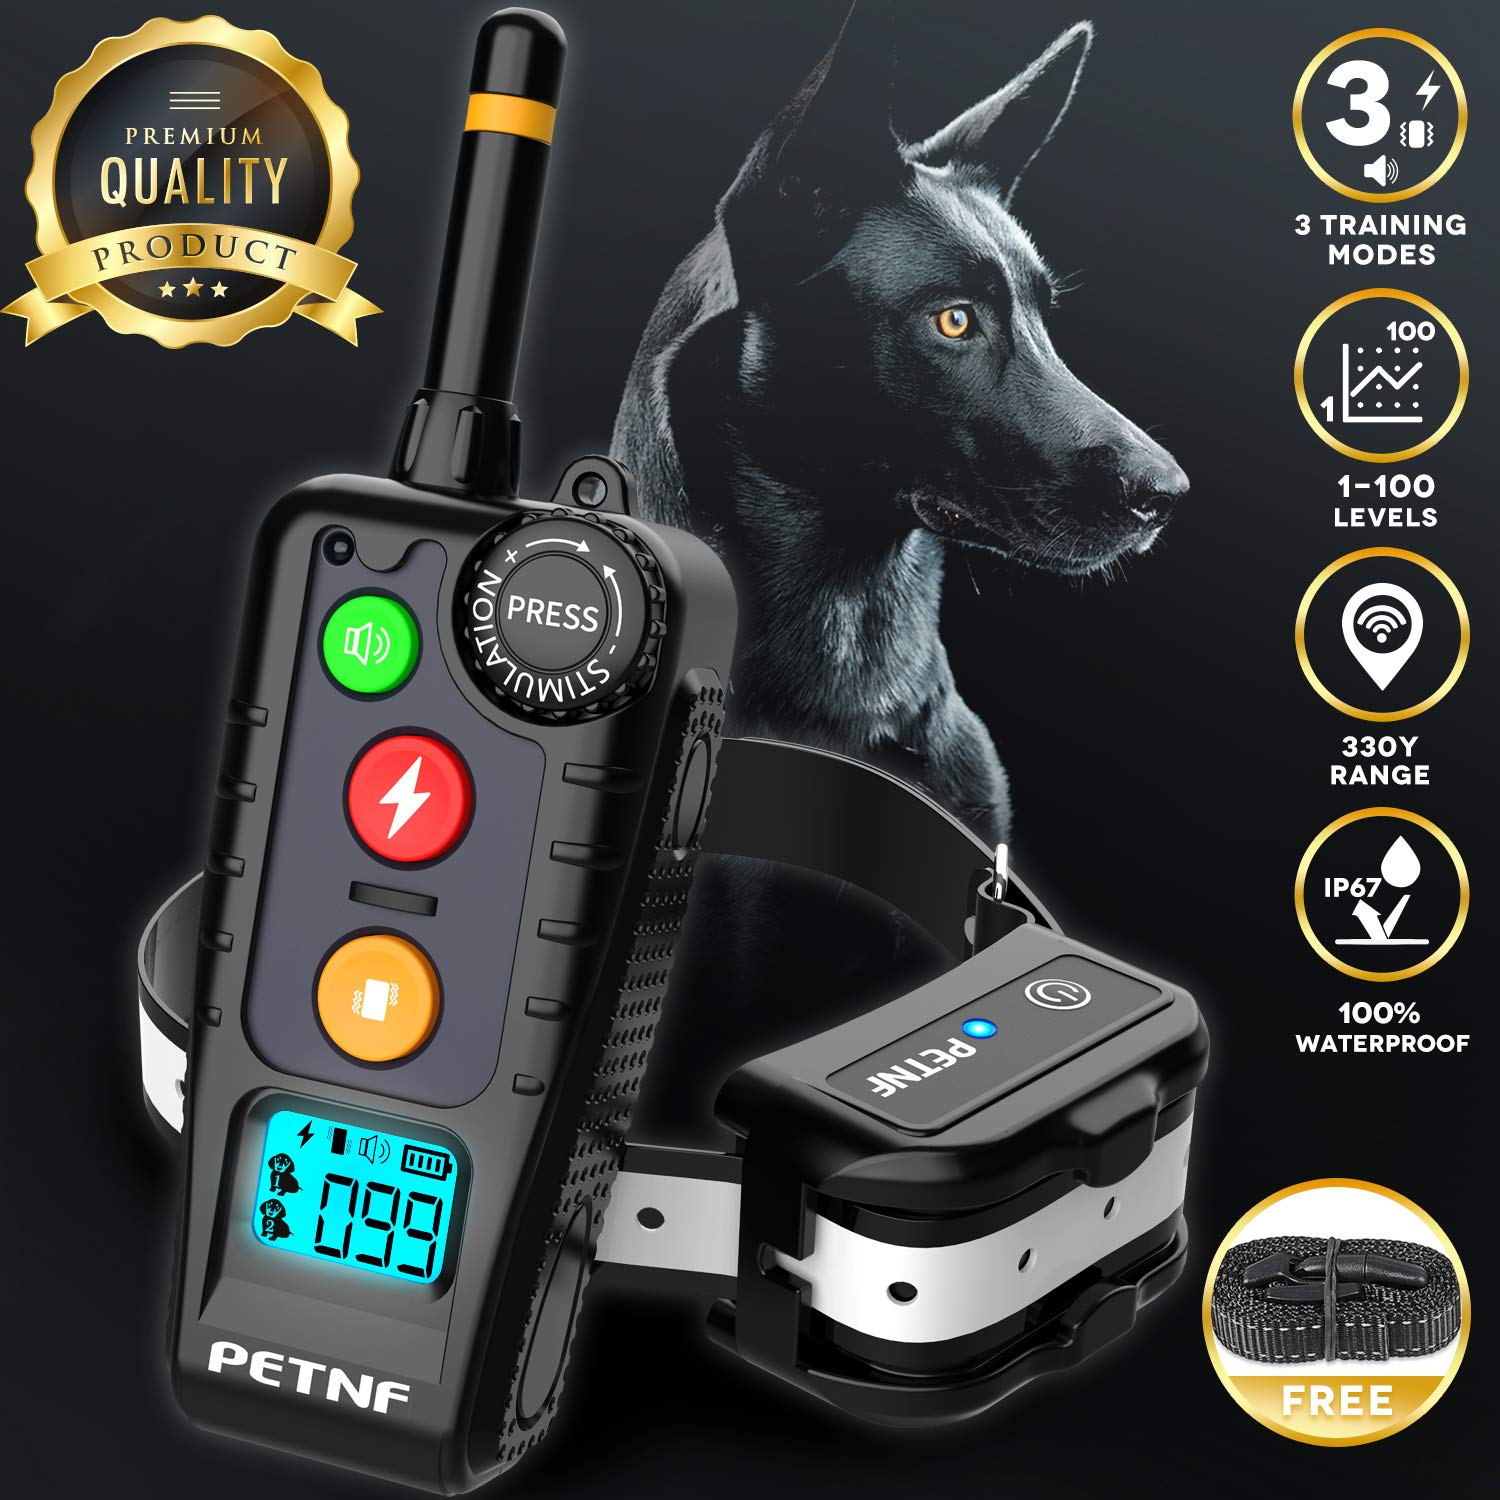 Shock Collar for Dogs,2019 Newest Dog Shock Collar with Remote,Dog Training Collar, Electric Bark Collar Rechargeable Waterproof,3 Training Modes,Remote Range Control,Backlight LCD Screen,Anti Leakage by petnf